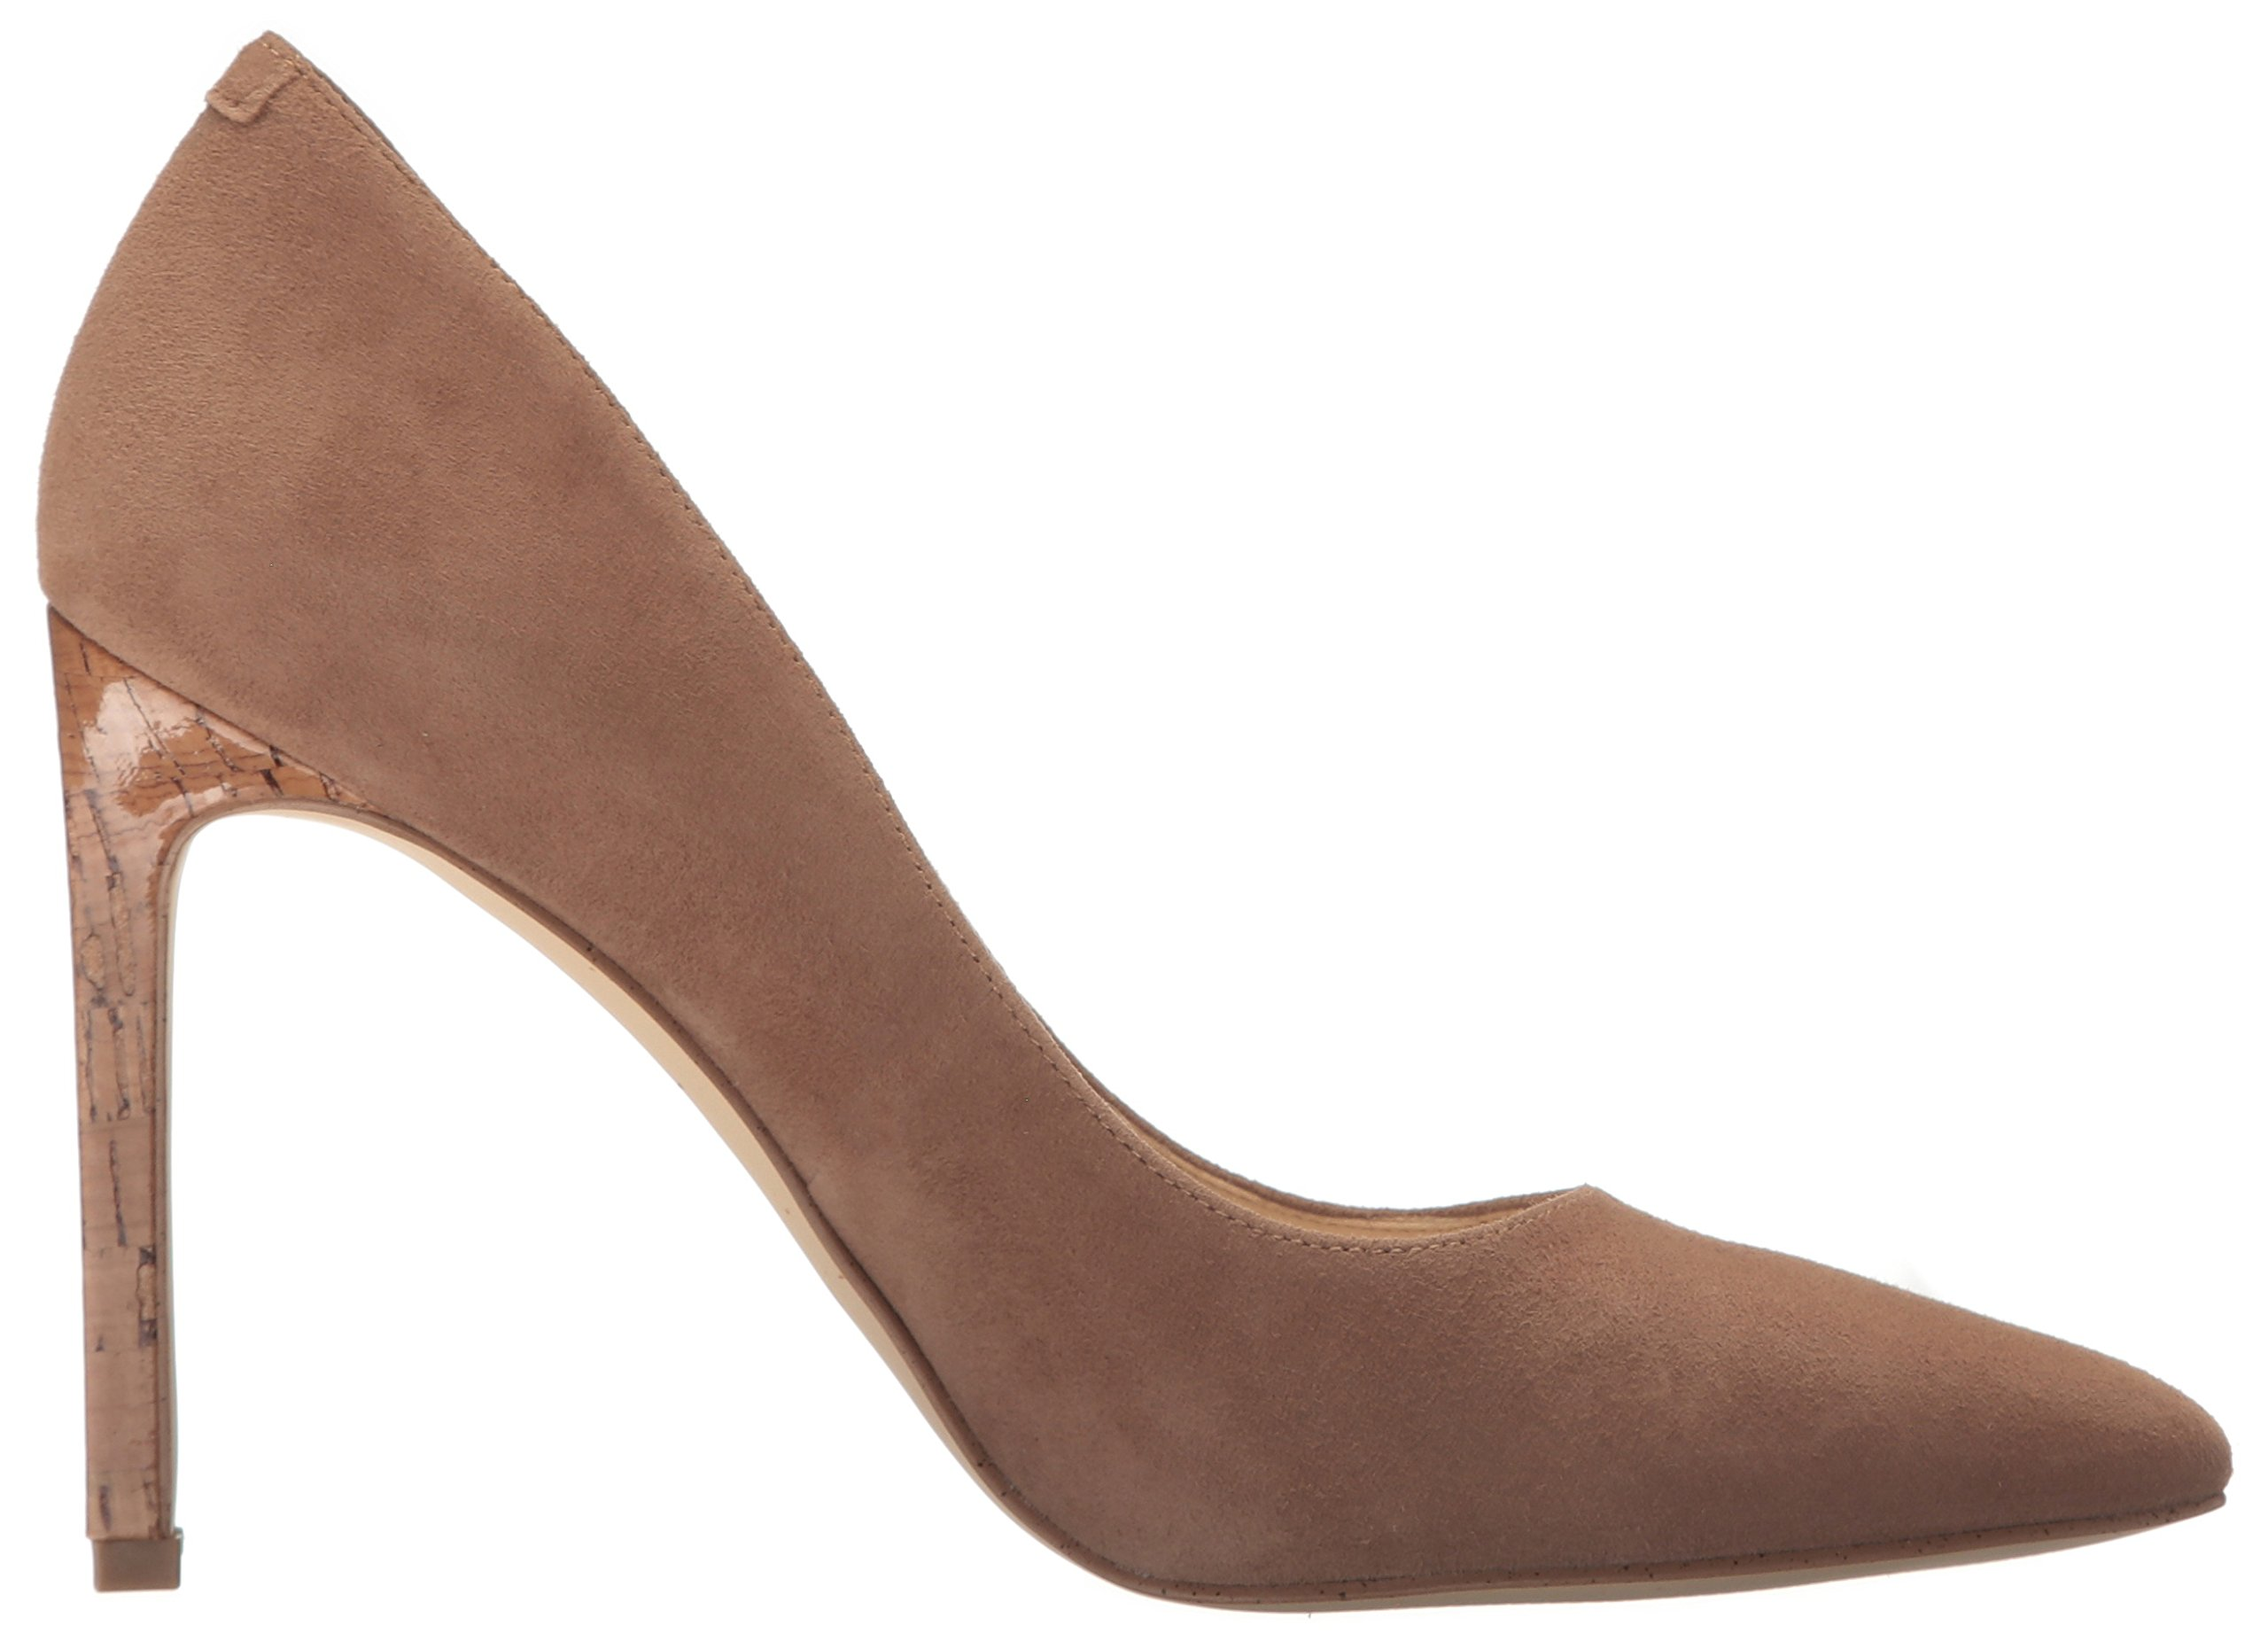 Nine West Women's Tatiana Suede Dress Pump, Dark Natural, 8 M US by Nine West (Image #7)